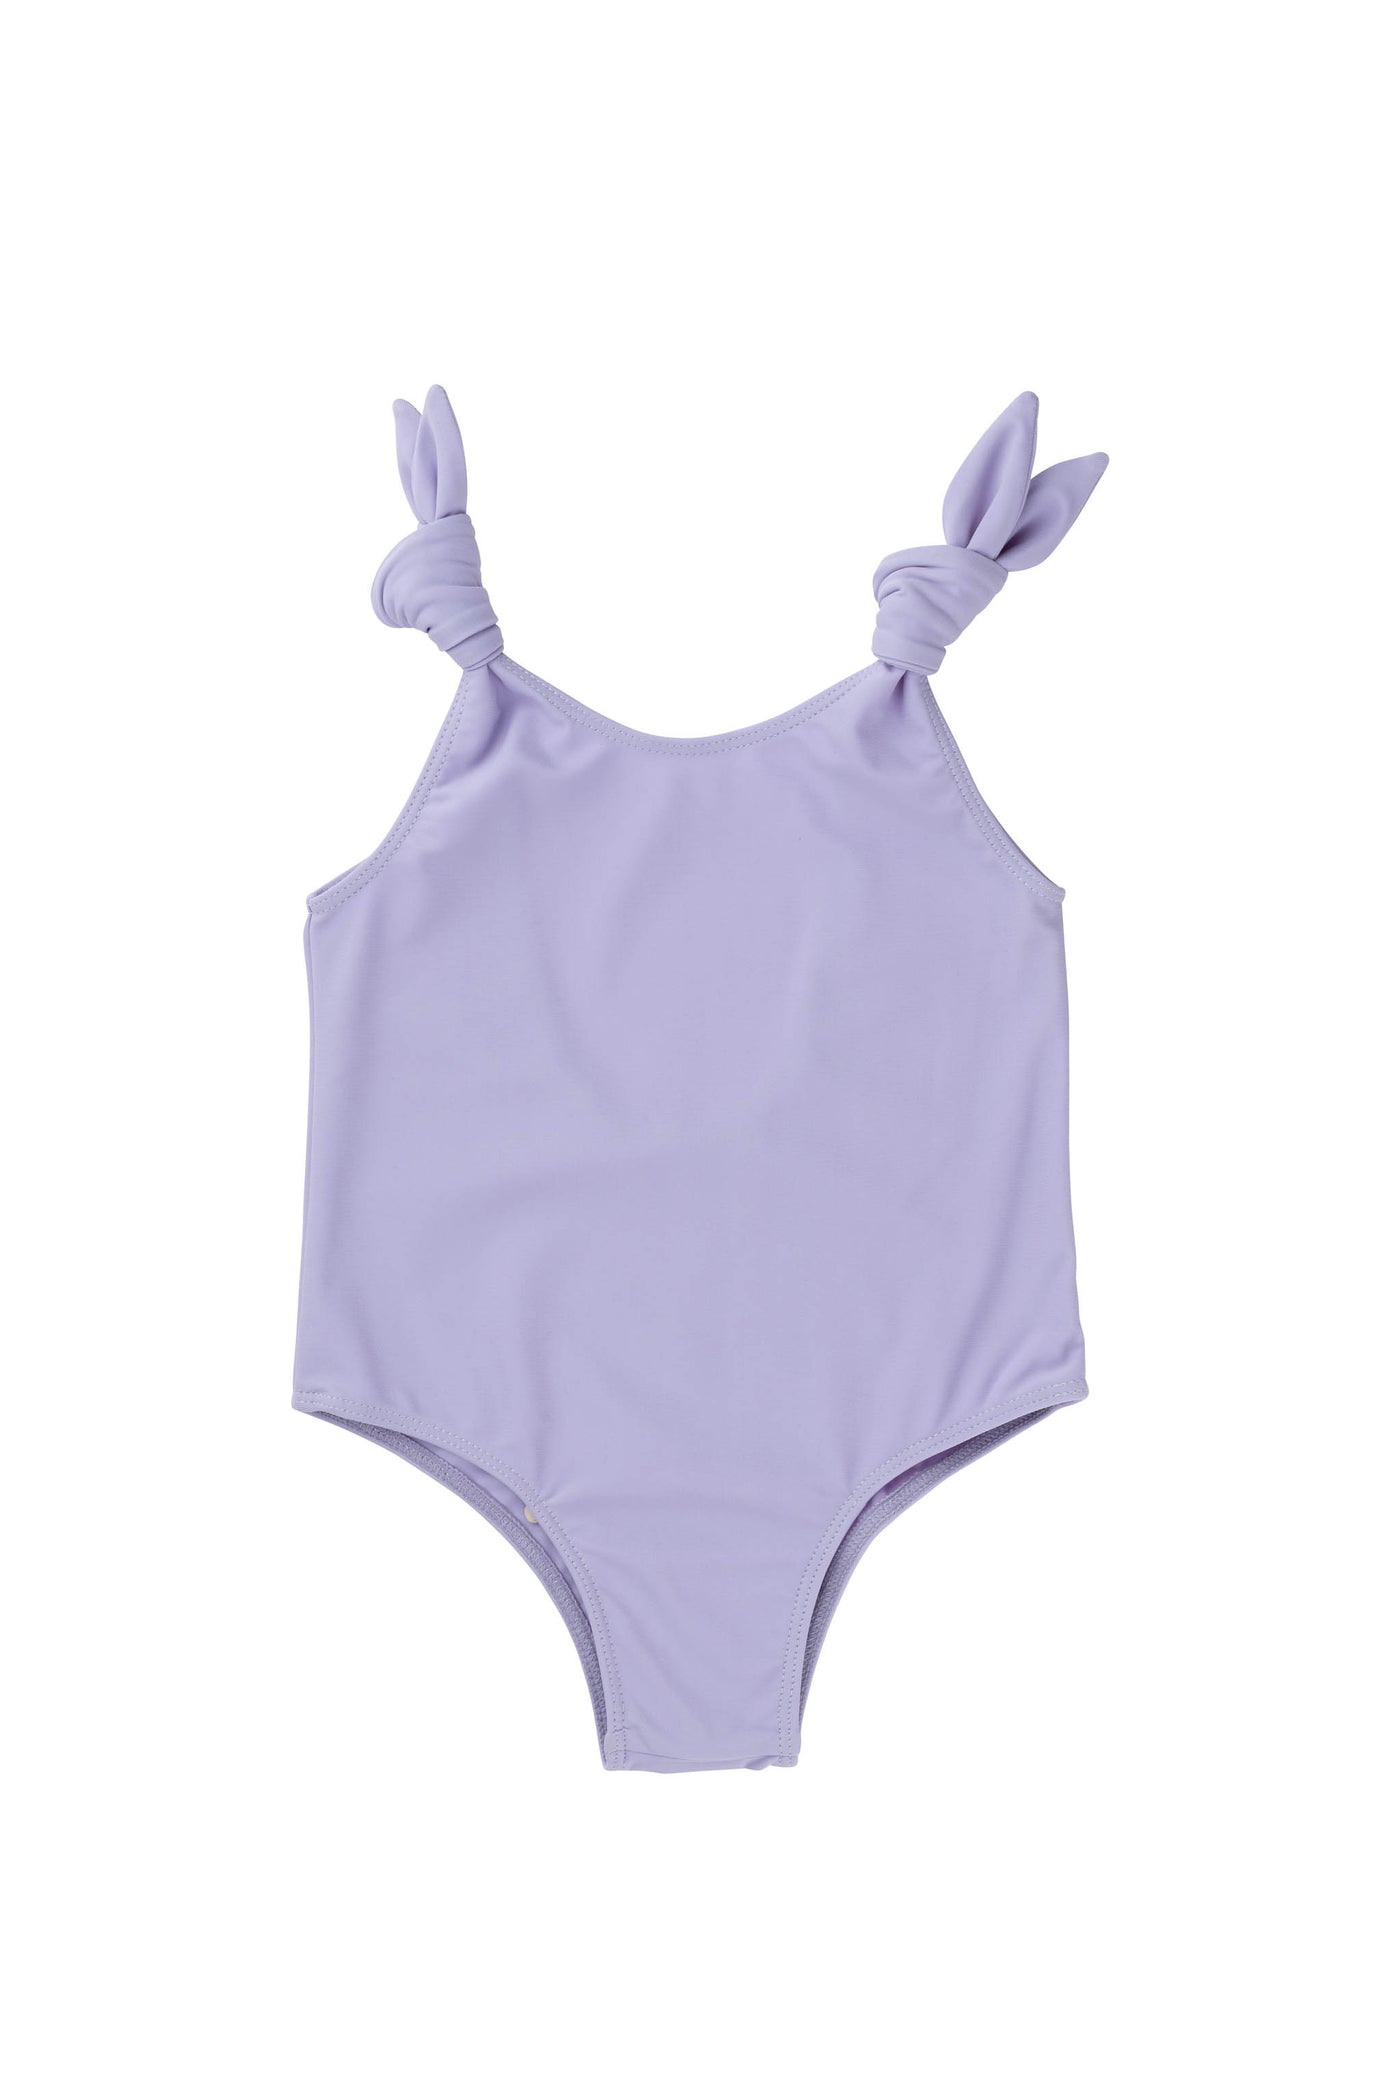 Mabel one piece - lavender